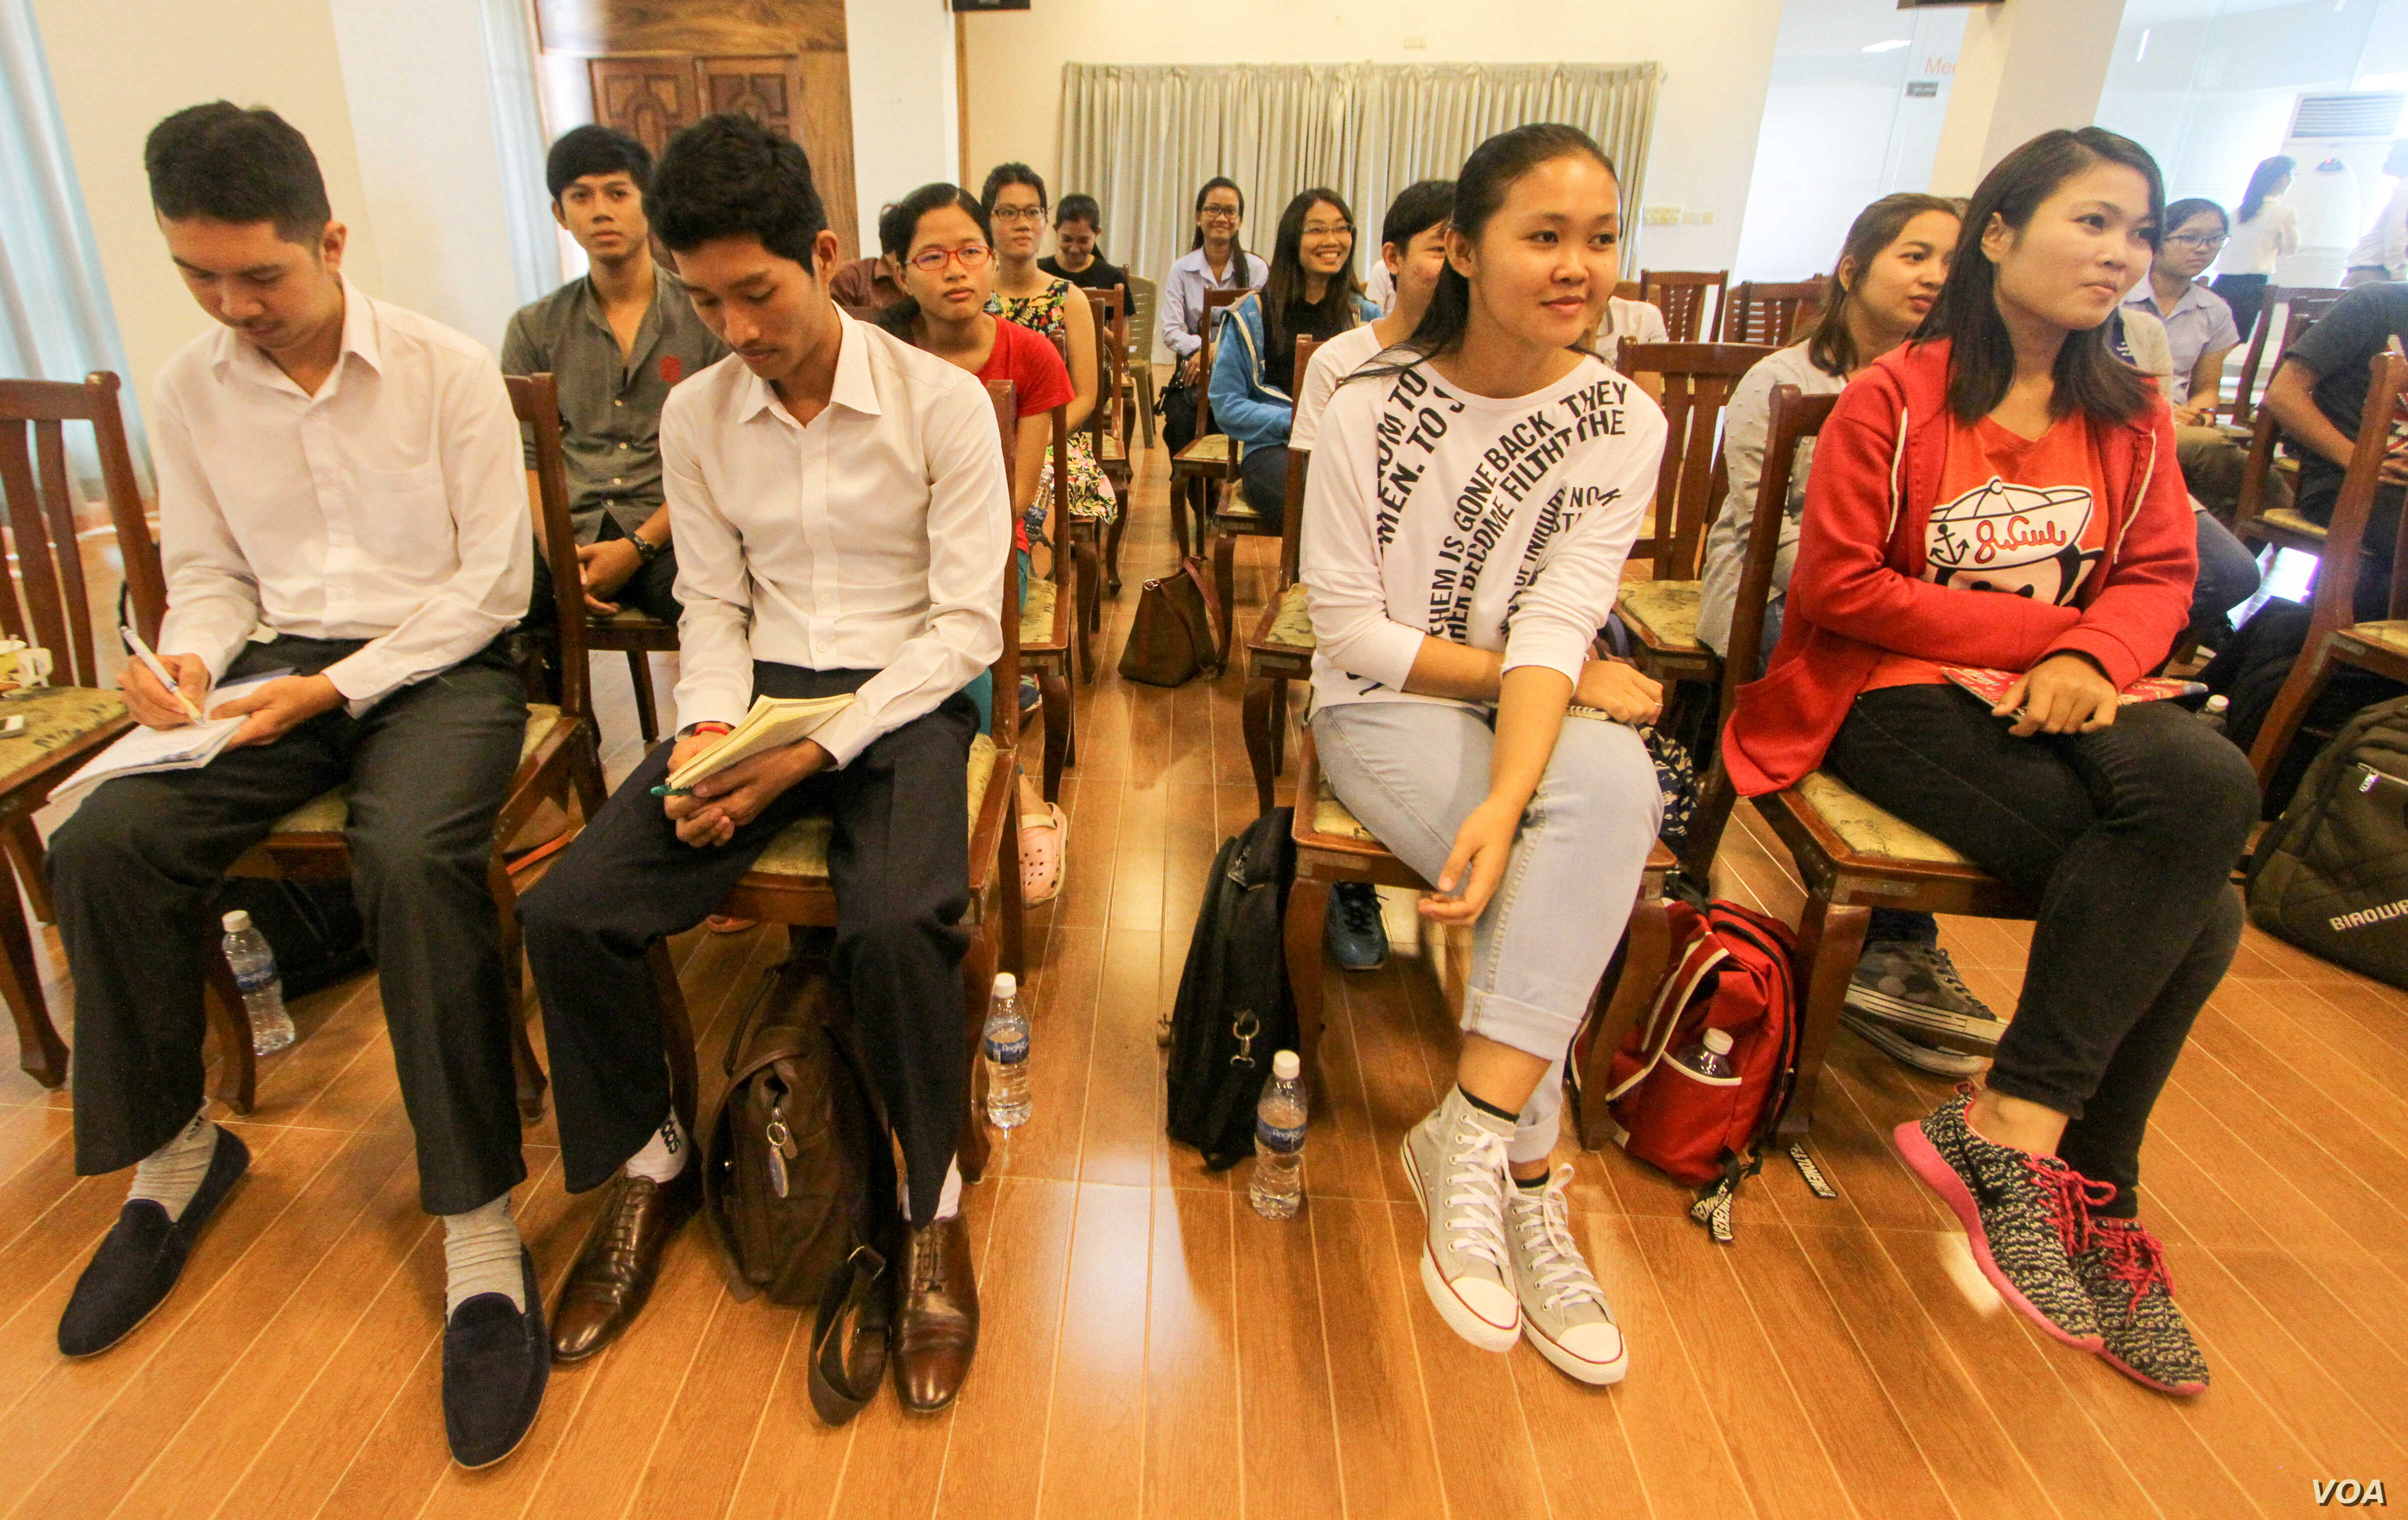 Over 60 youths participate in a workshop on anti-corruption issues on Thursday, June 30, 2016 in Phnom Penh. ( Leng Len/VOA Khmer)